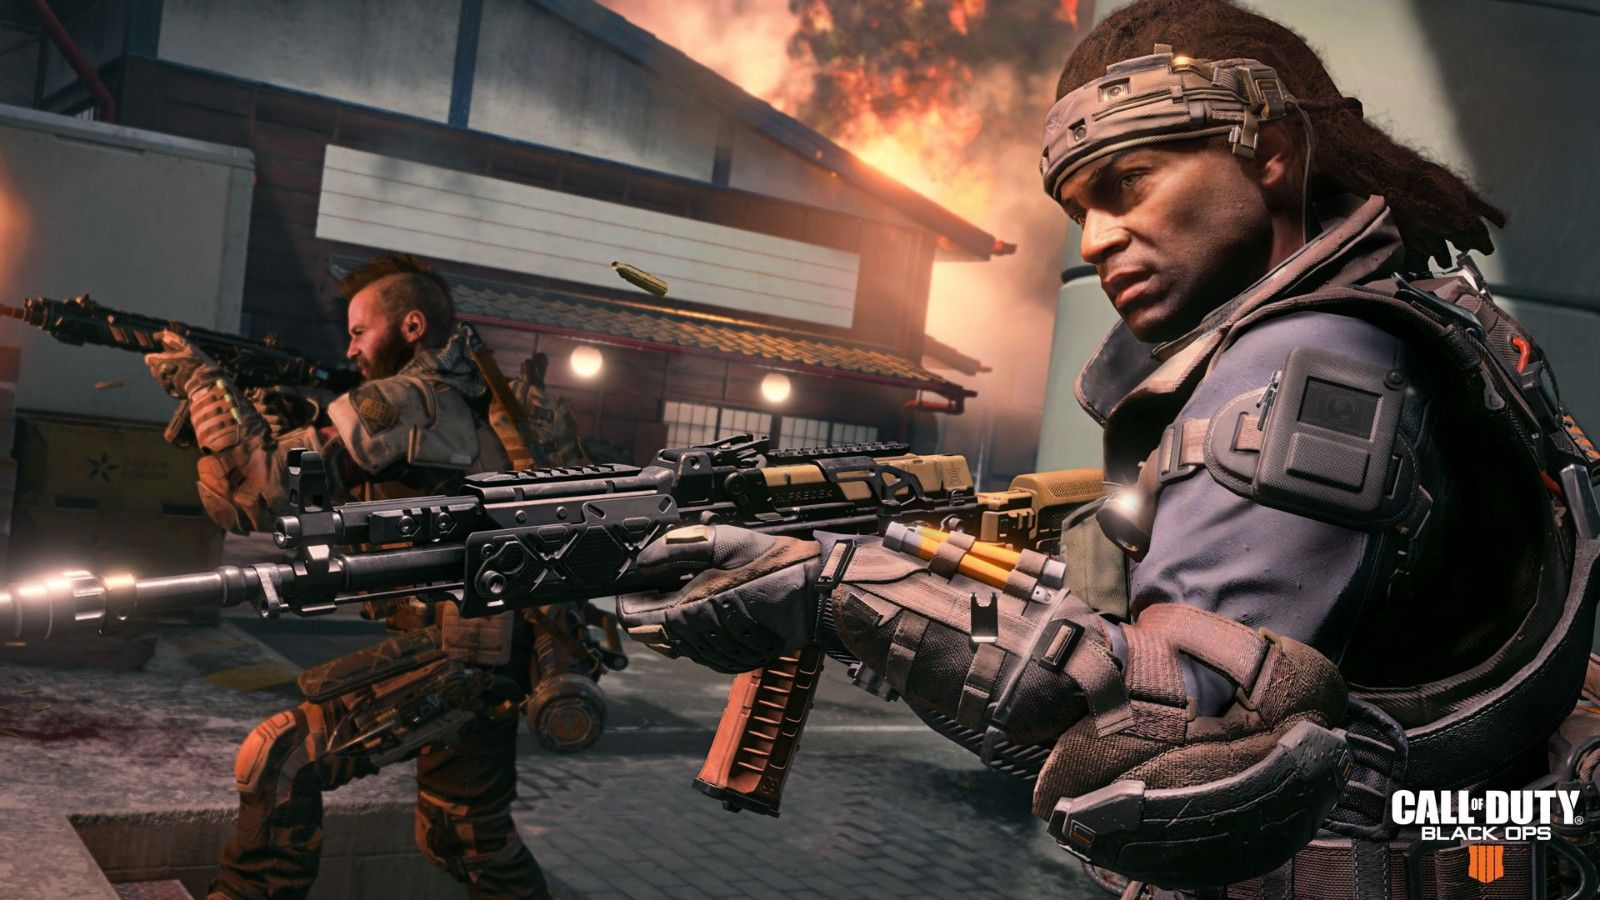 Call of Duty: Black Ops 4 od Activision już dostępne